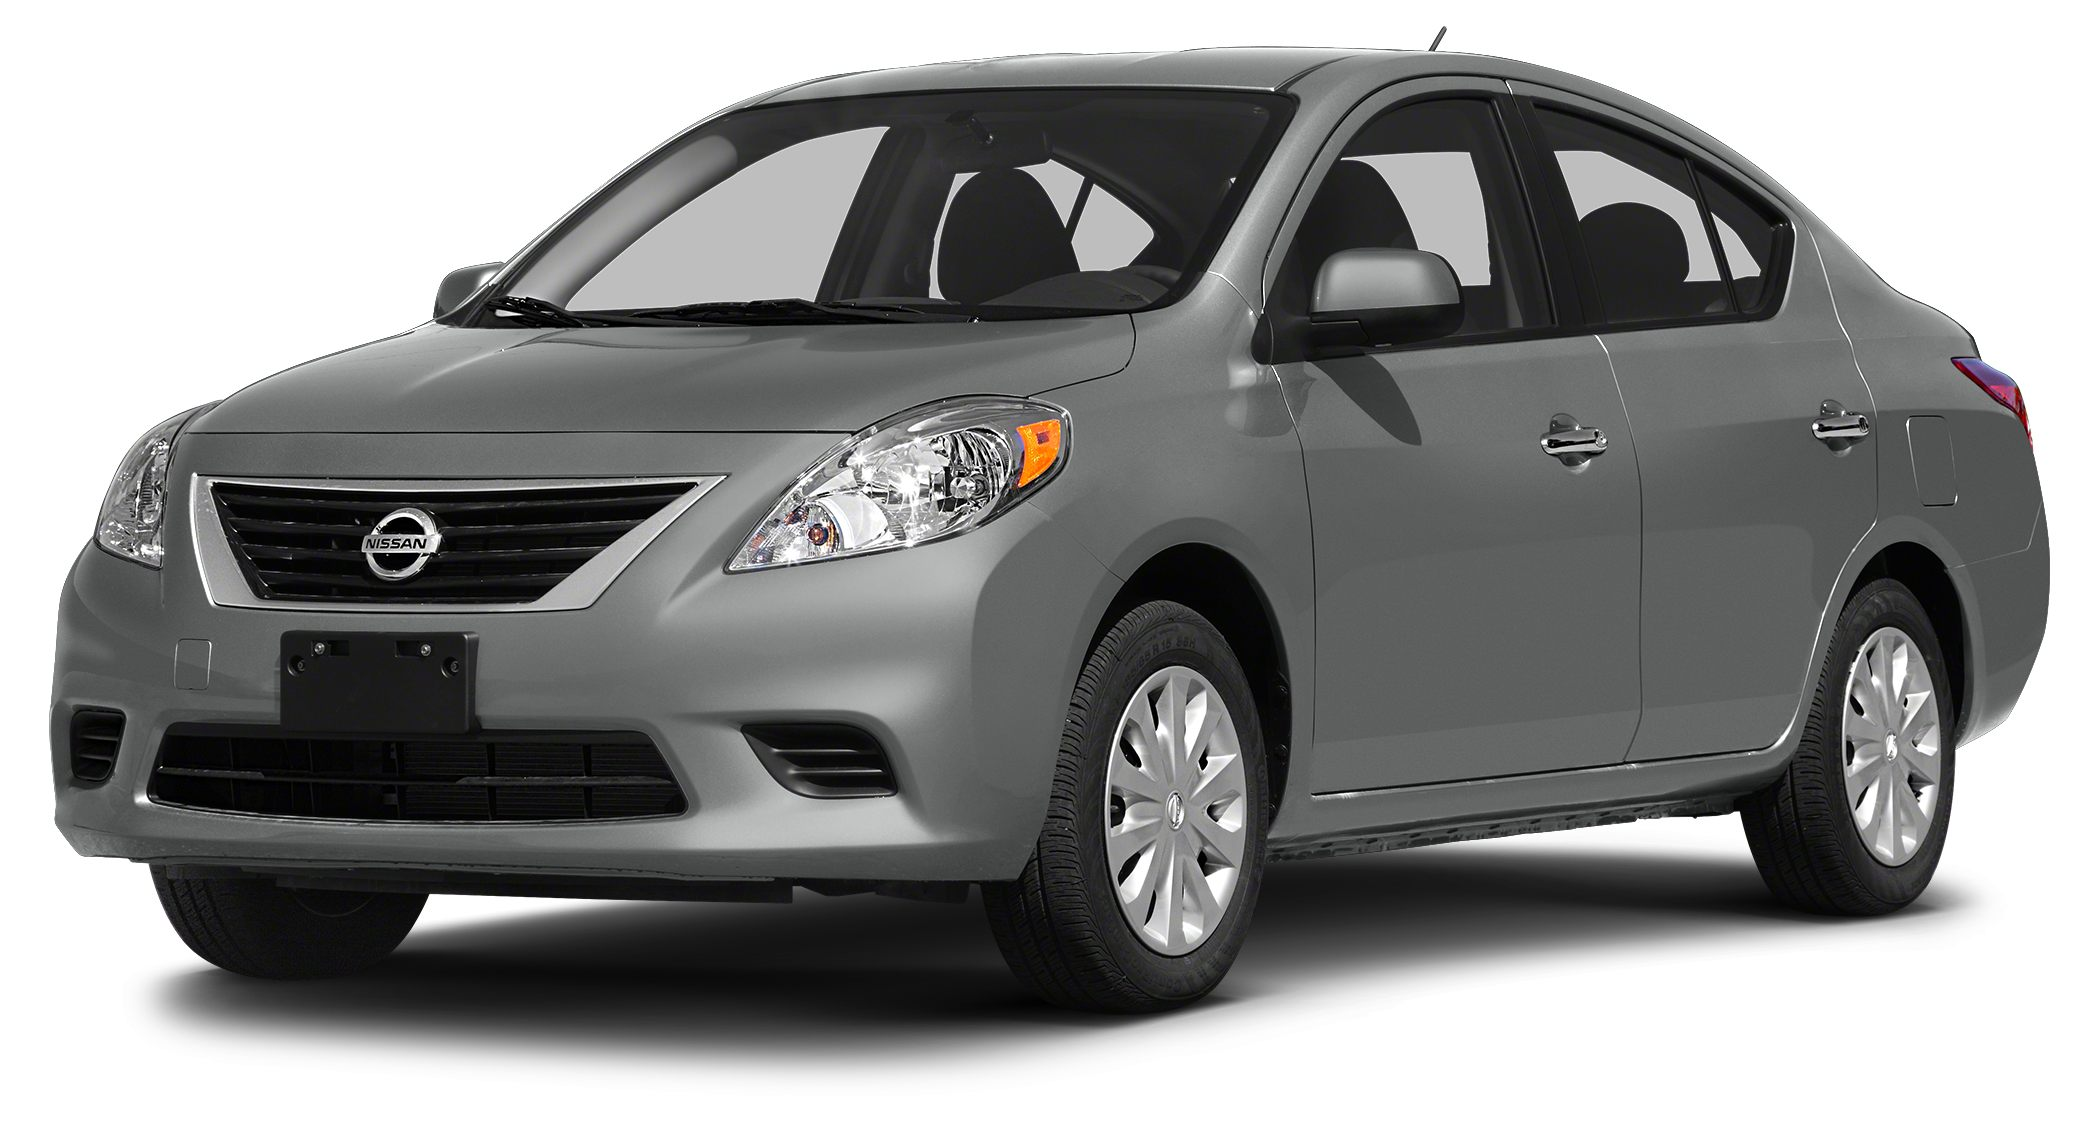 2014 Nissan Versa 16 S Miles 64983Color Magnetic Gray Stock 7170481A VIN 3N1CN7APXEL835345